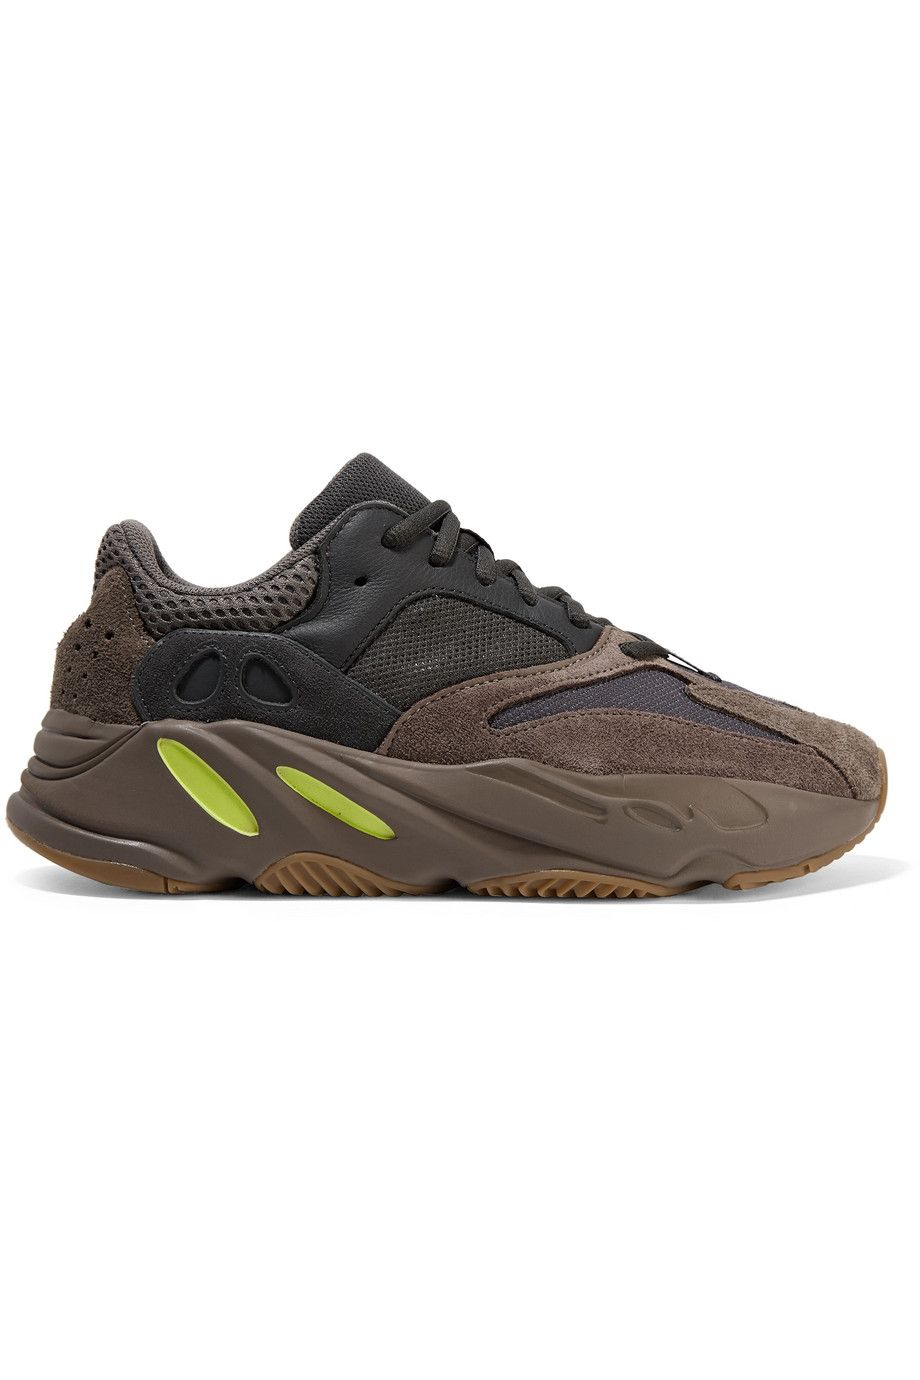 shop-yeezy-700-wave-runner-mauve-leather-suede-mesh-sneakers